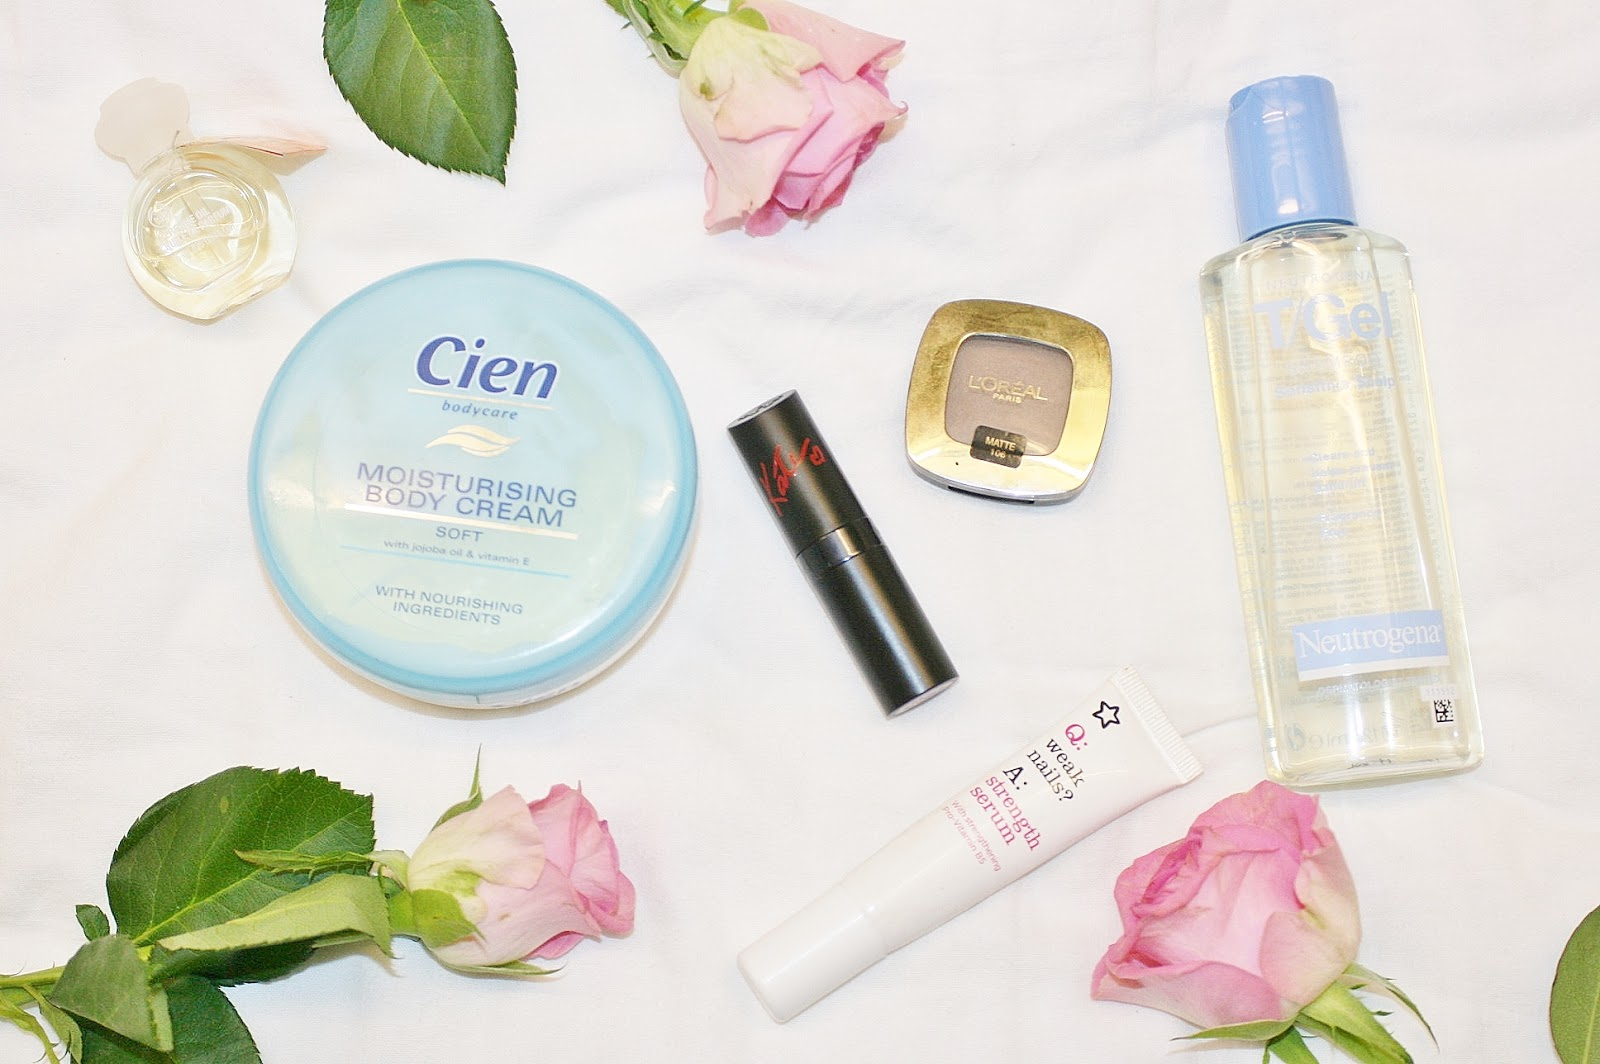 Penney Chic October Monthly Favourites beauty